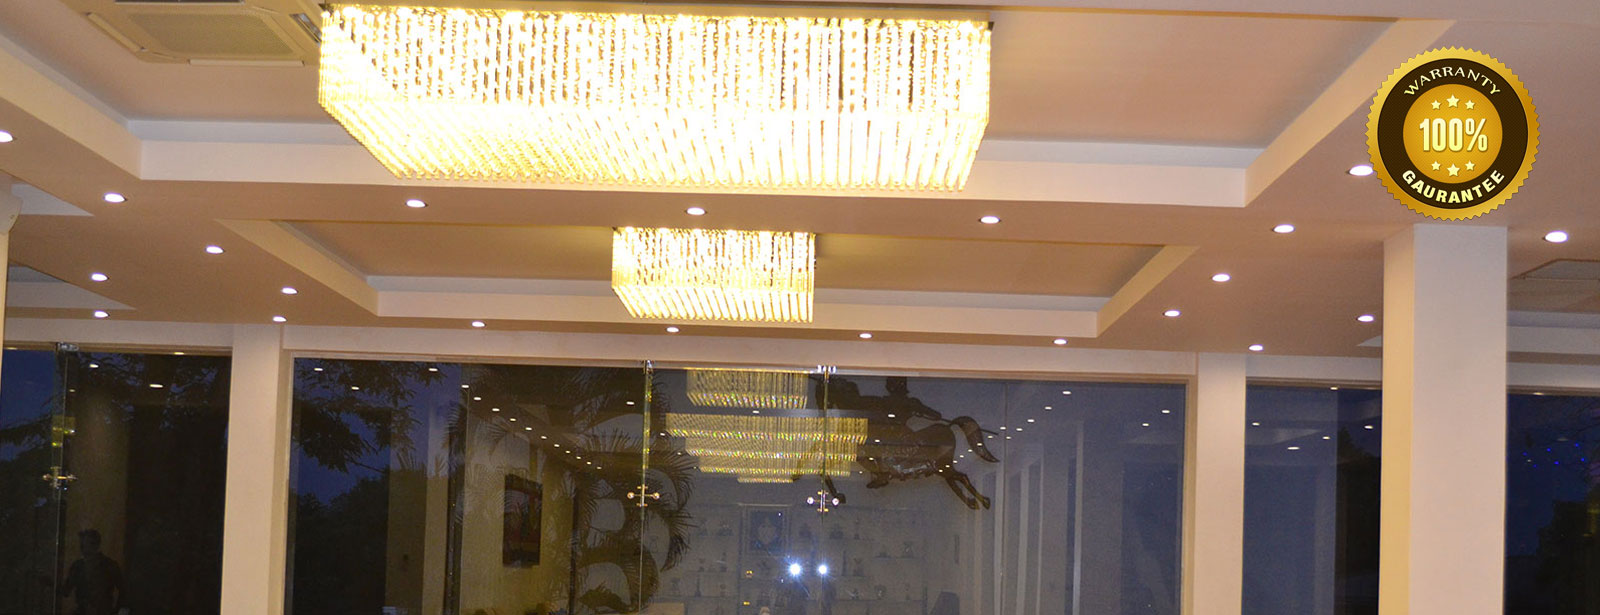 Led Lights in Sri Lanka Price